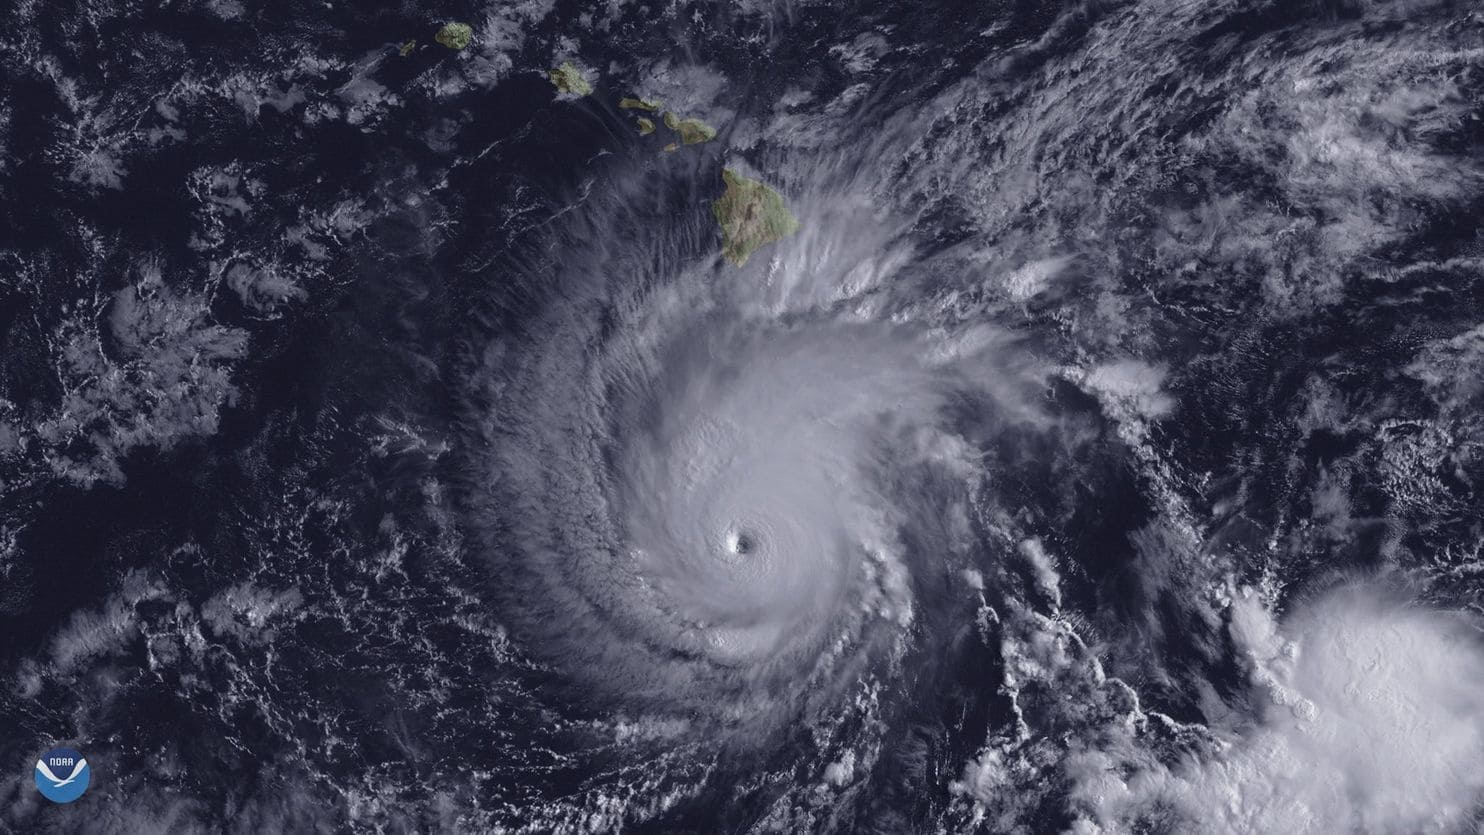 """An image by NOAA's GOES-15 satellite shows Hurricane Lane when it was about 300 miles south of Hawaii's Big Island on Aug. 22. (National Oceanic and Atmospheric Administration/EPA-EFE/Shutterstock)"""